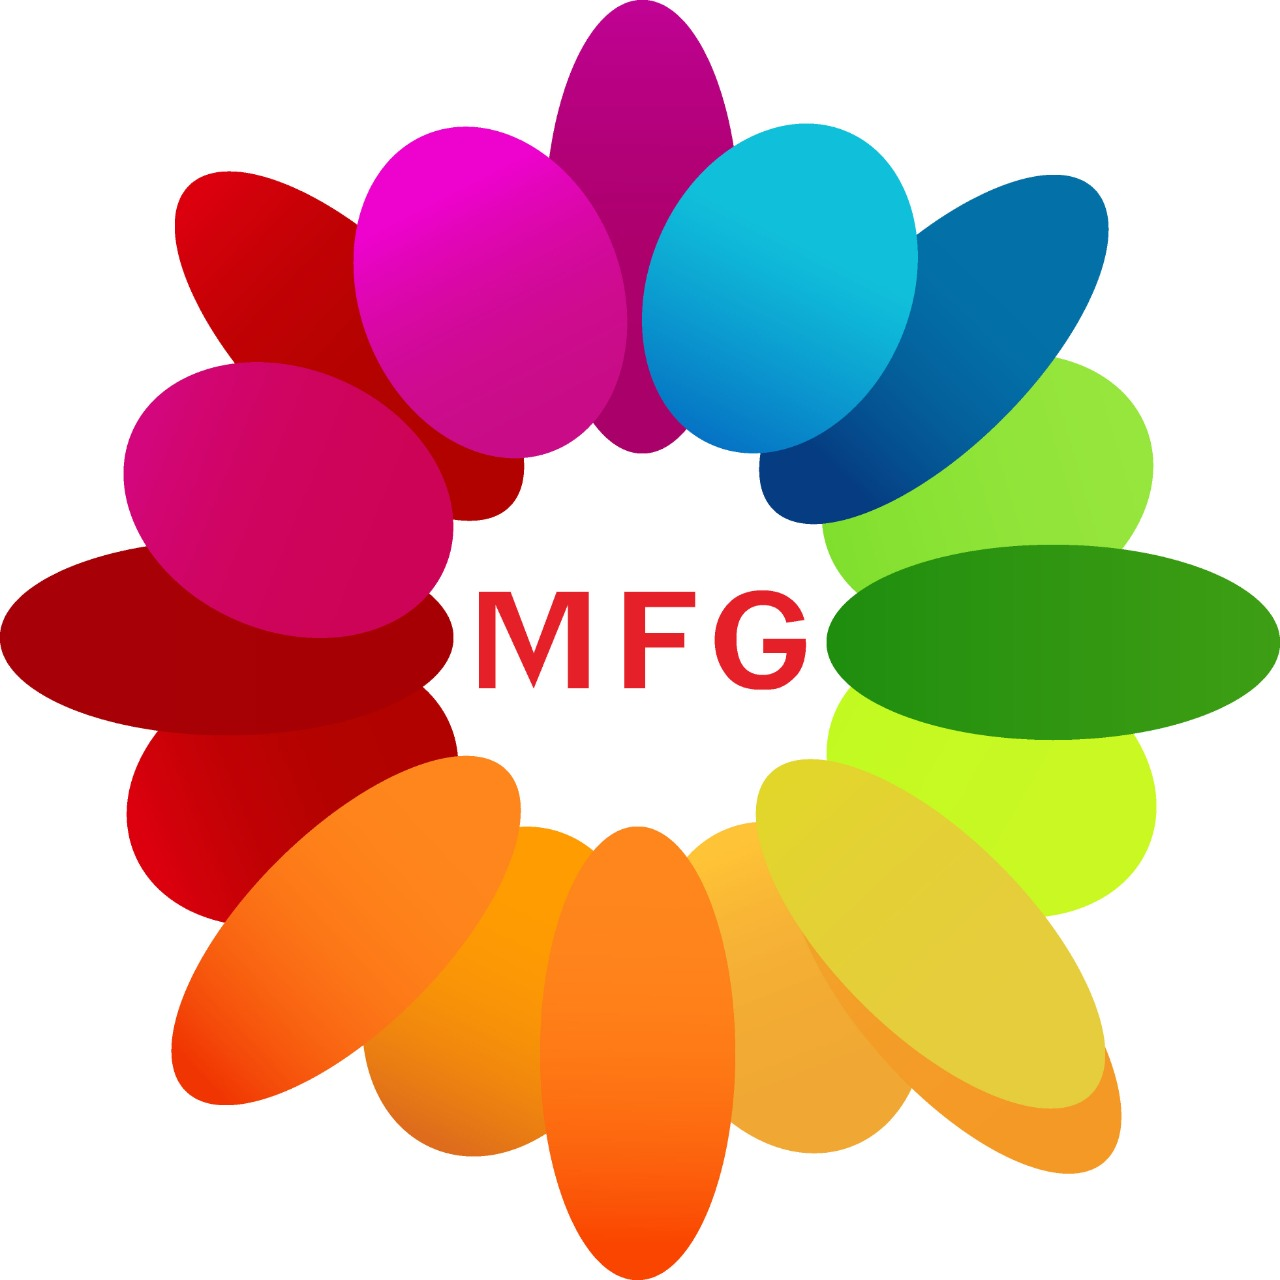 1 kg strawberry fresh cream premium quality  cake  with 1 rakhi and roli chawal